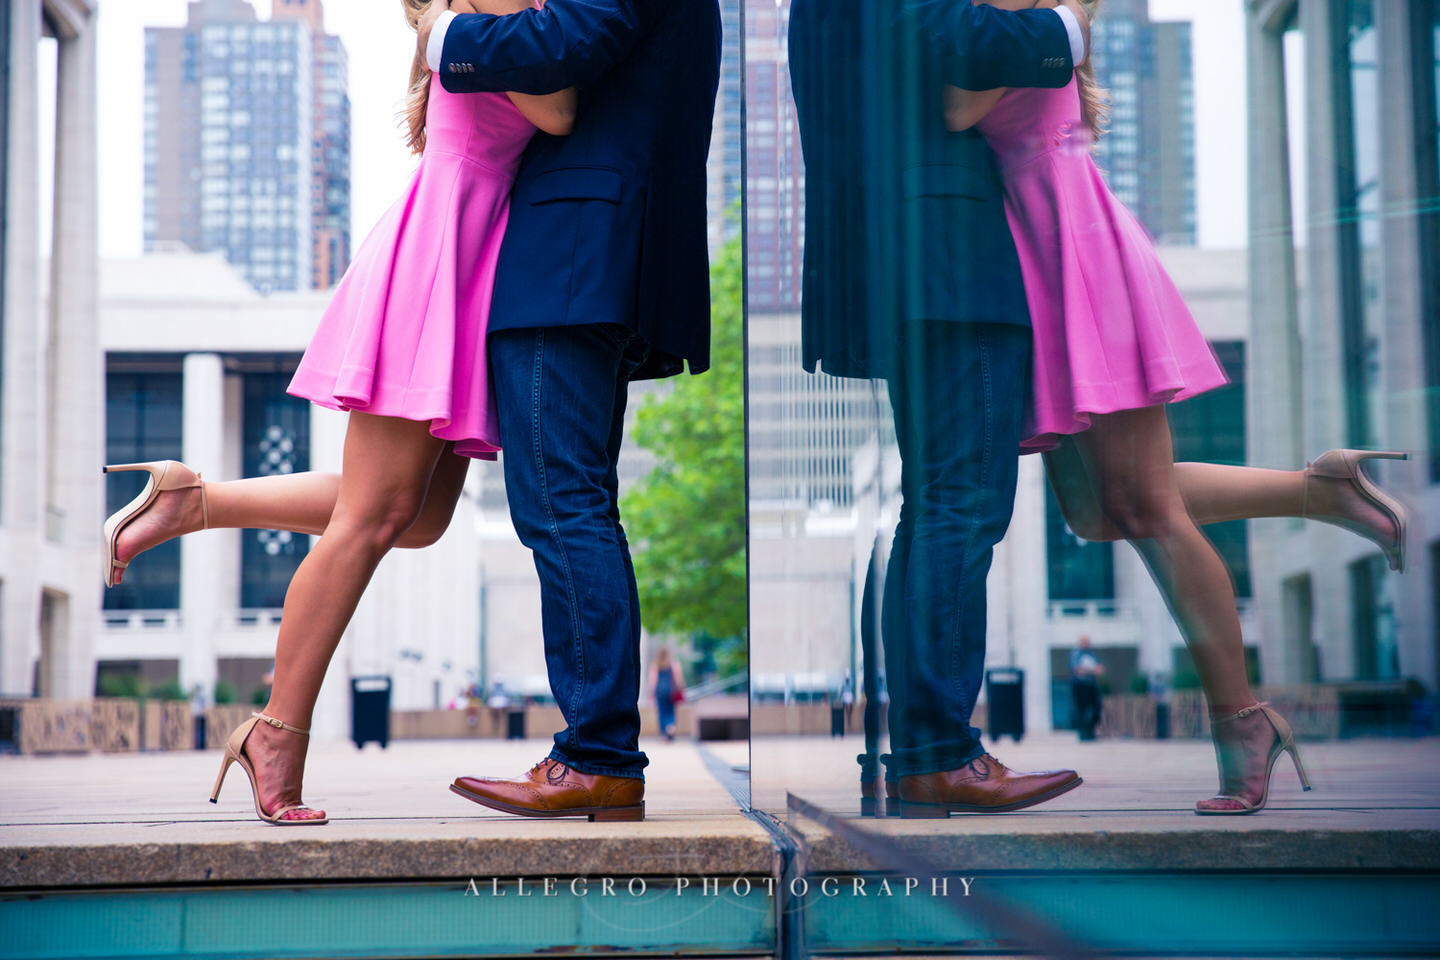 lincoln center manhattan e-session photo by Allegro Photography